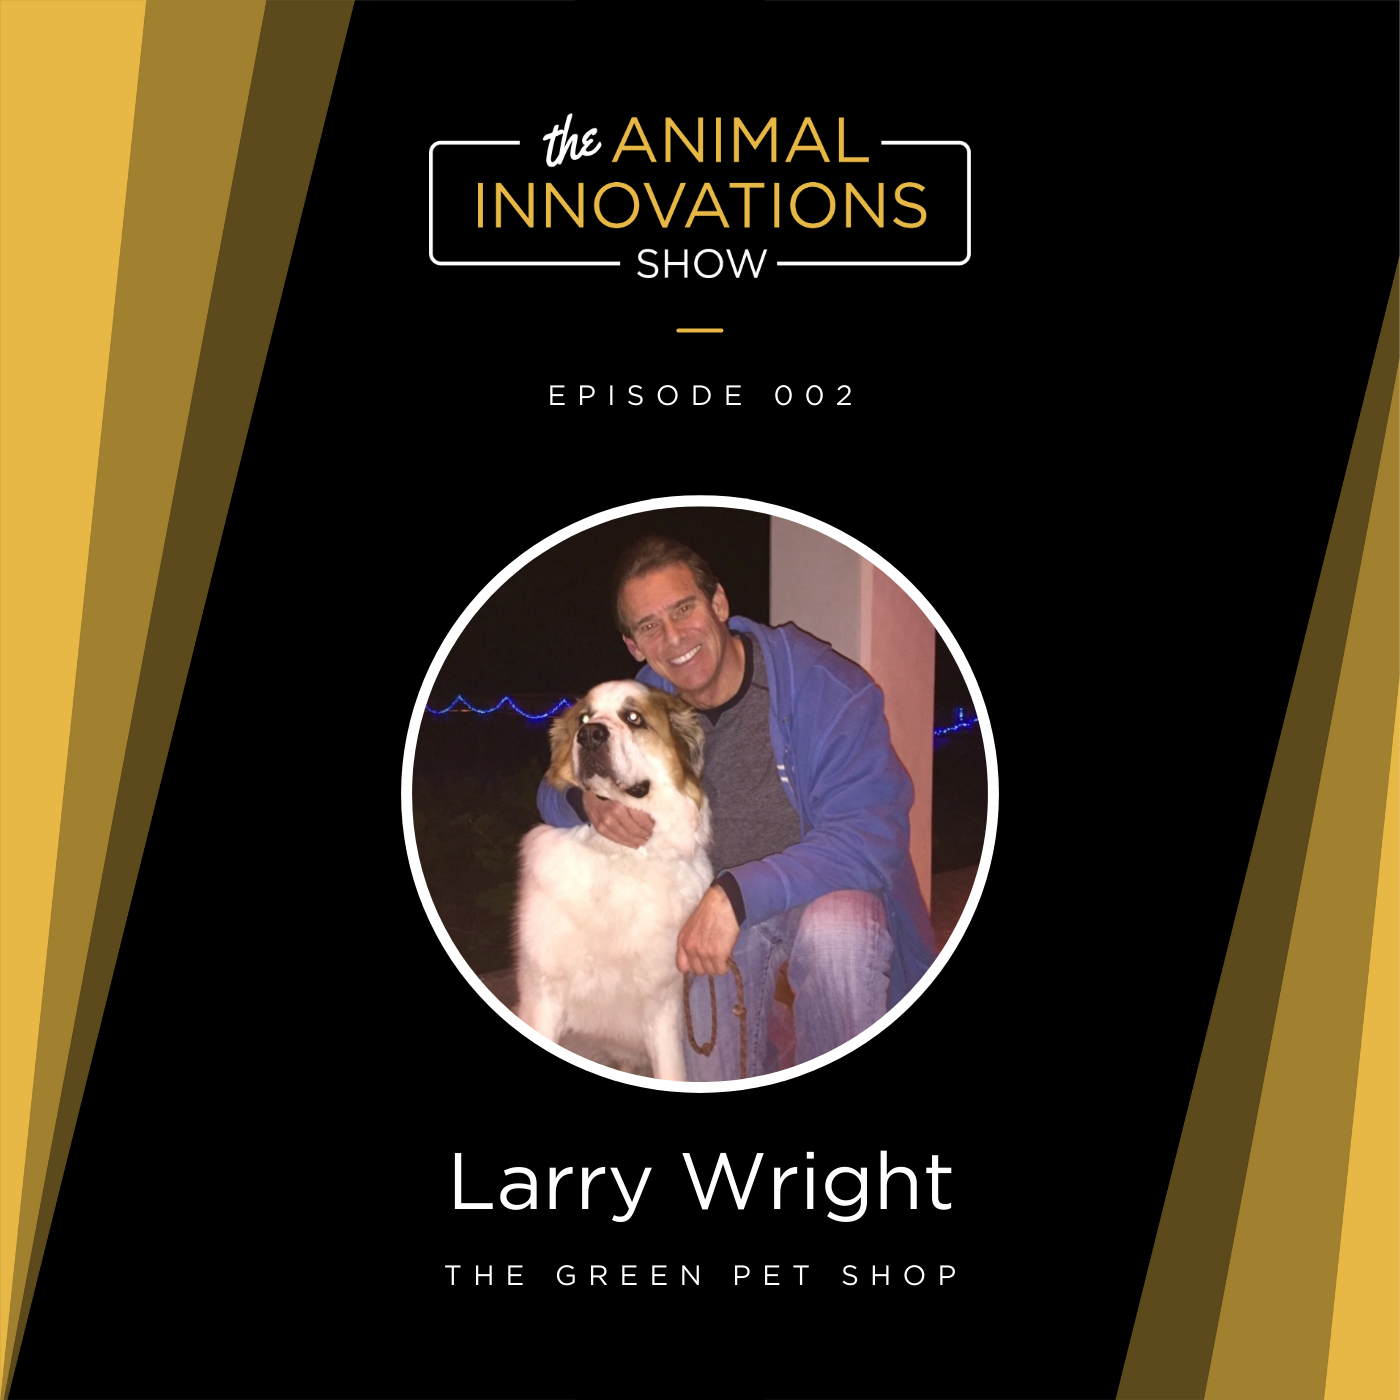 Larry Wright